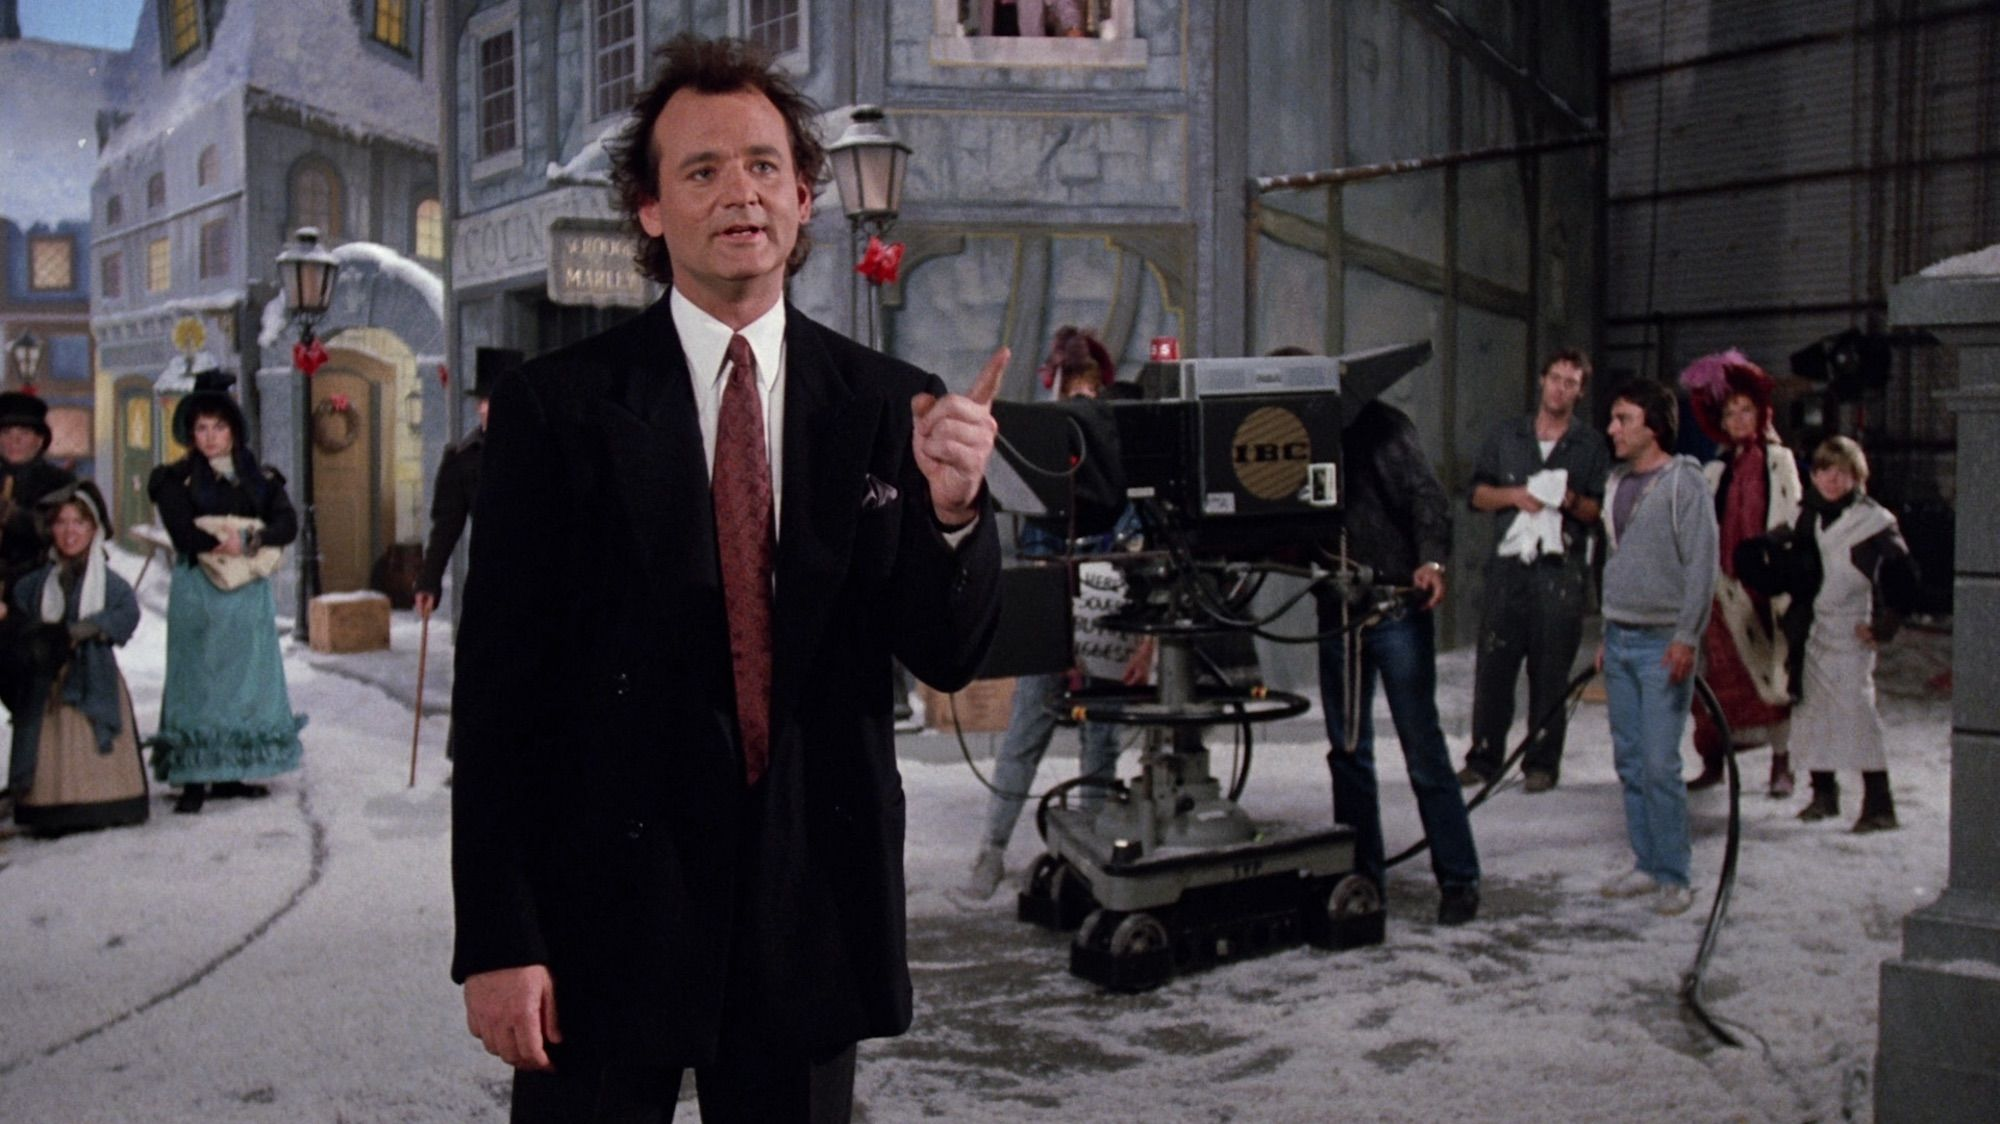 Bill Murray as tv network president Frank Cross, the equivalent of Scrooge in Scrooged (1988)